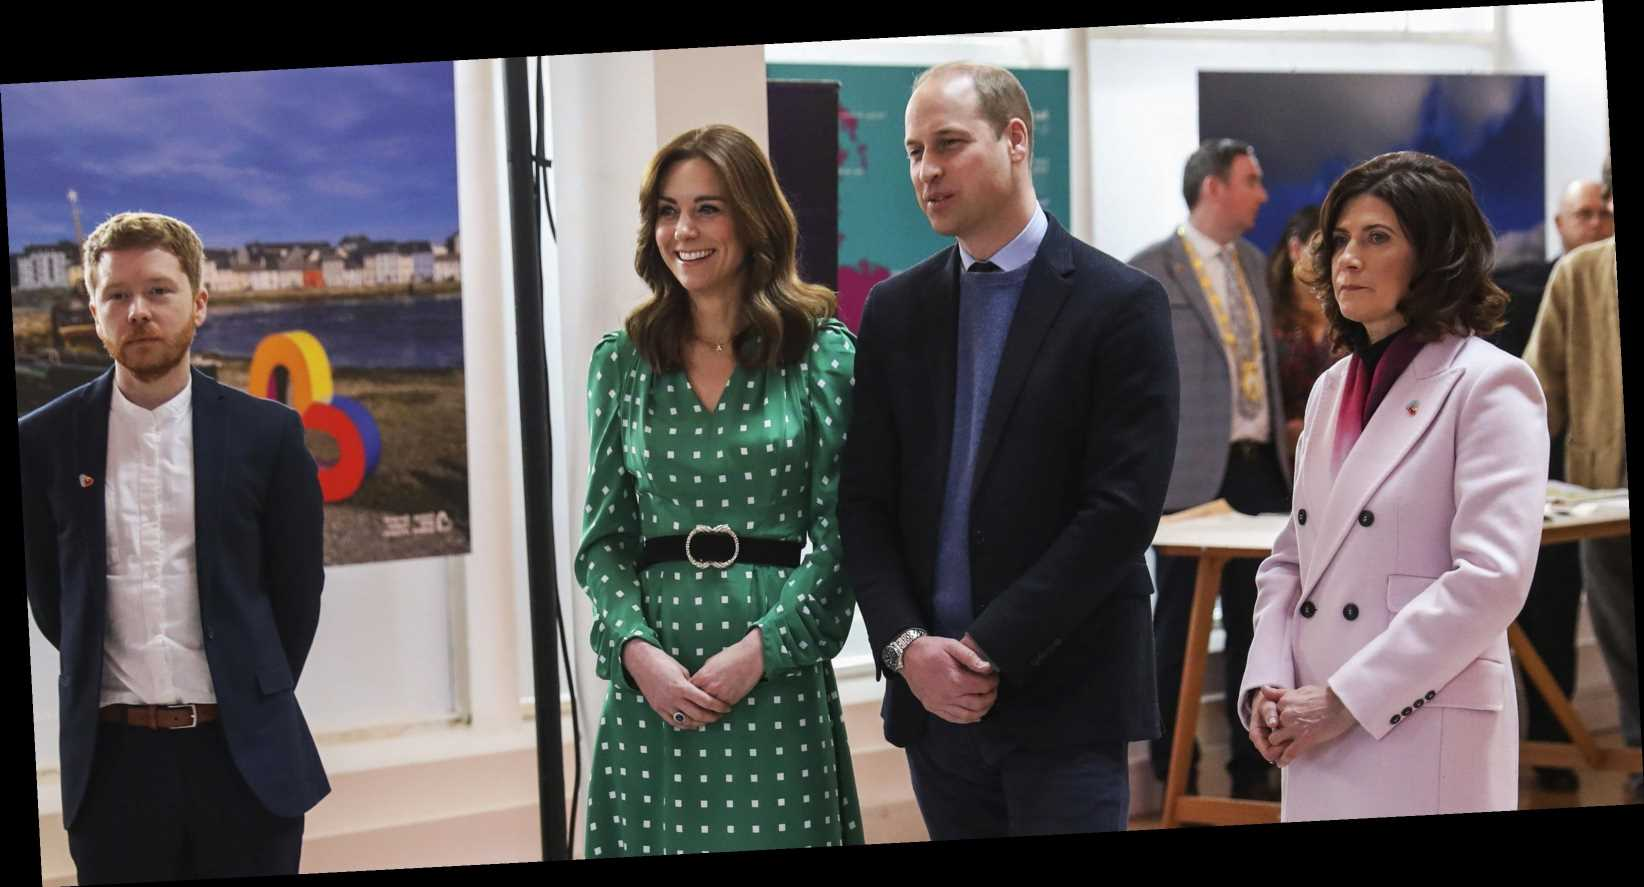 Kate Middleton Continues Her Green Style Streak with a Polka Dot Dress